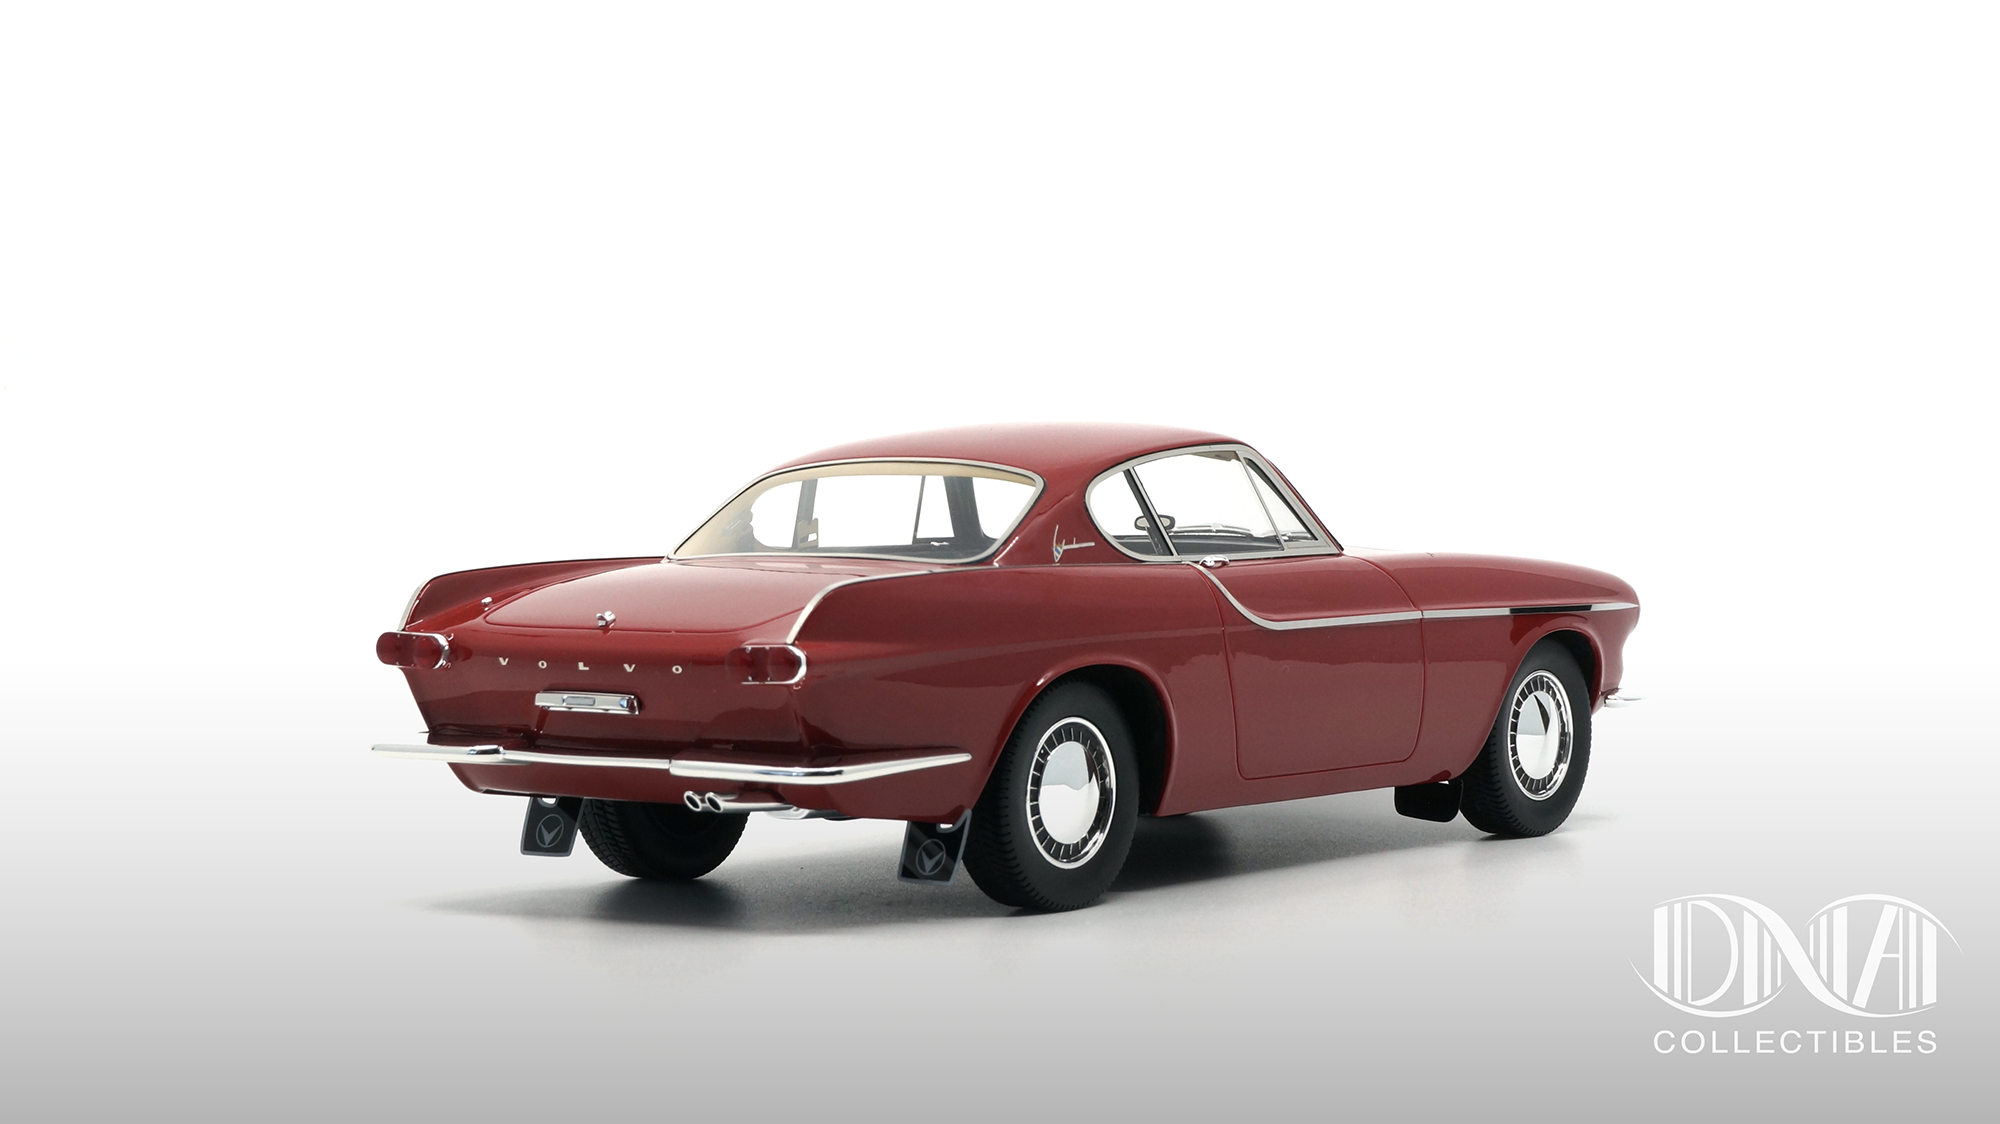 Volvo P1800 DNA Collectibles 1/18